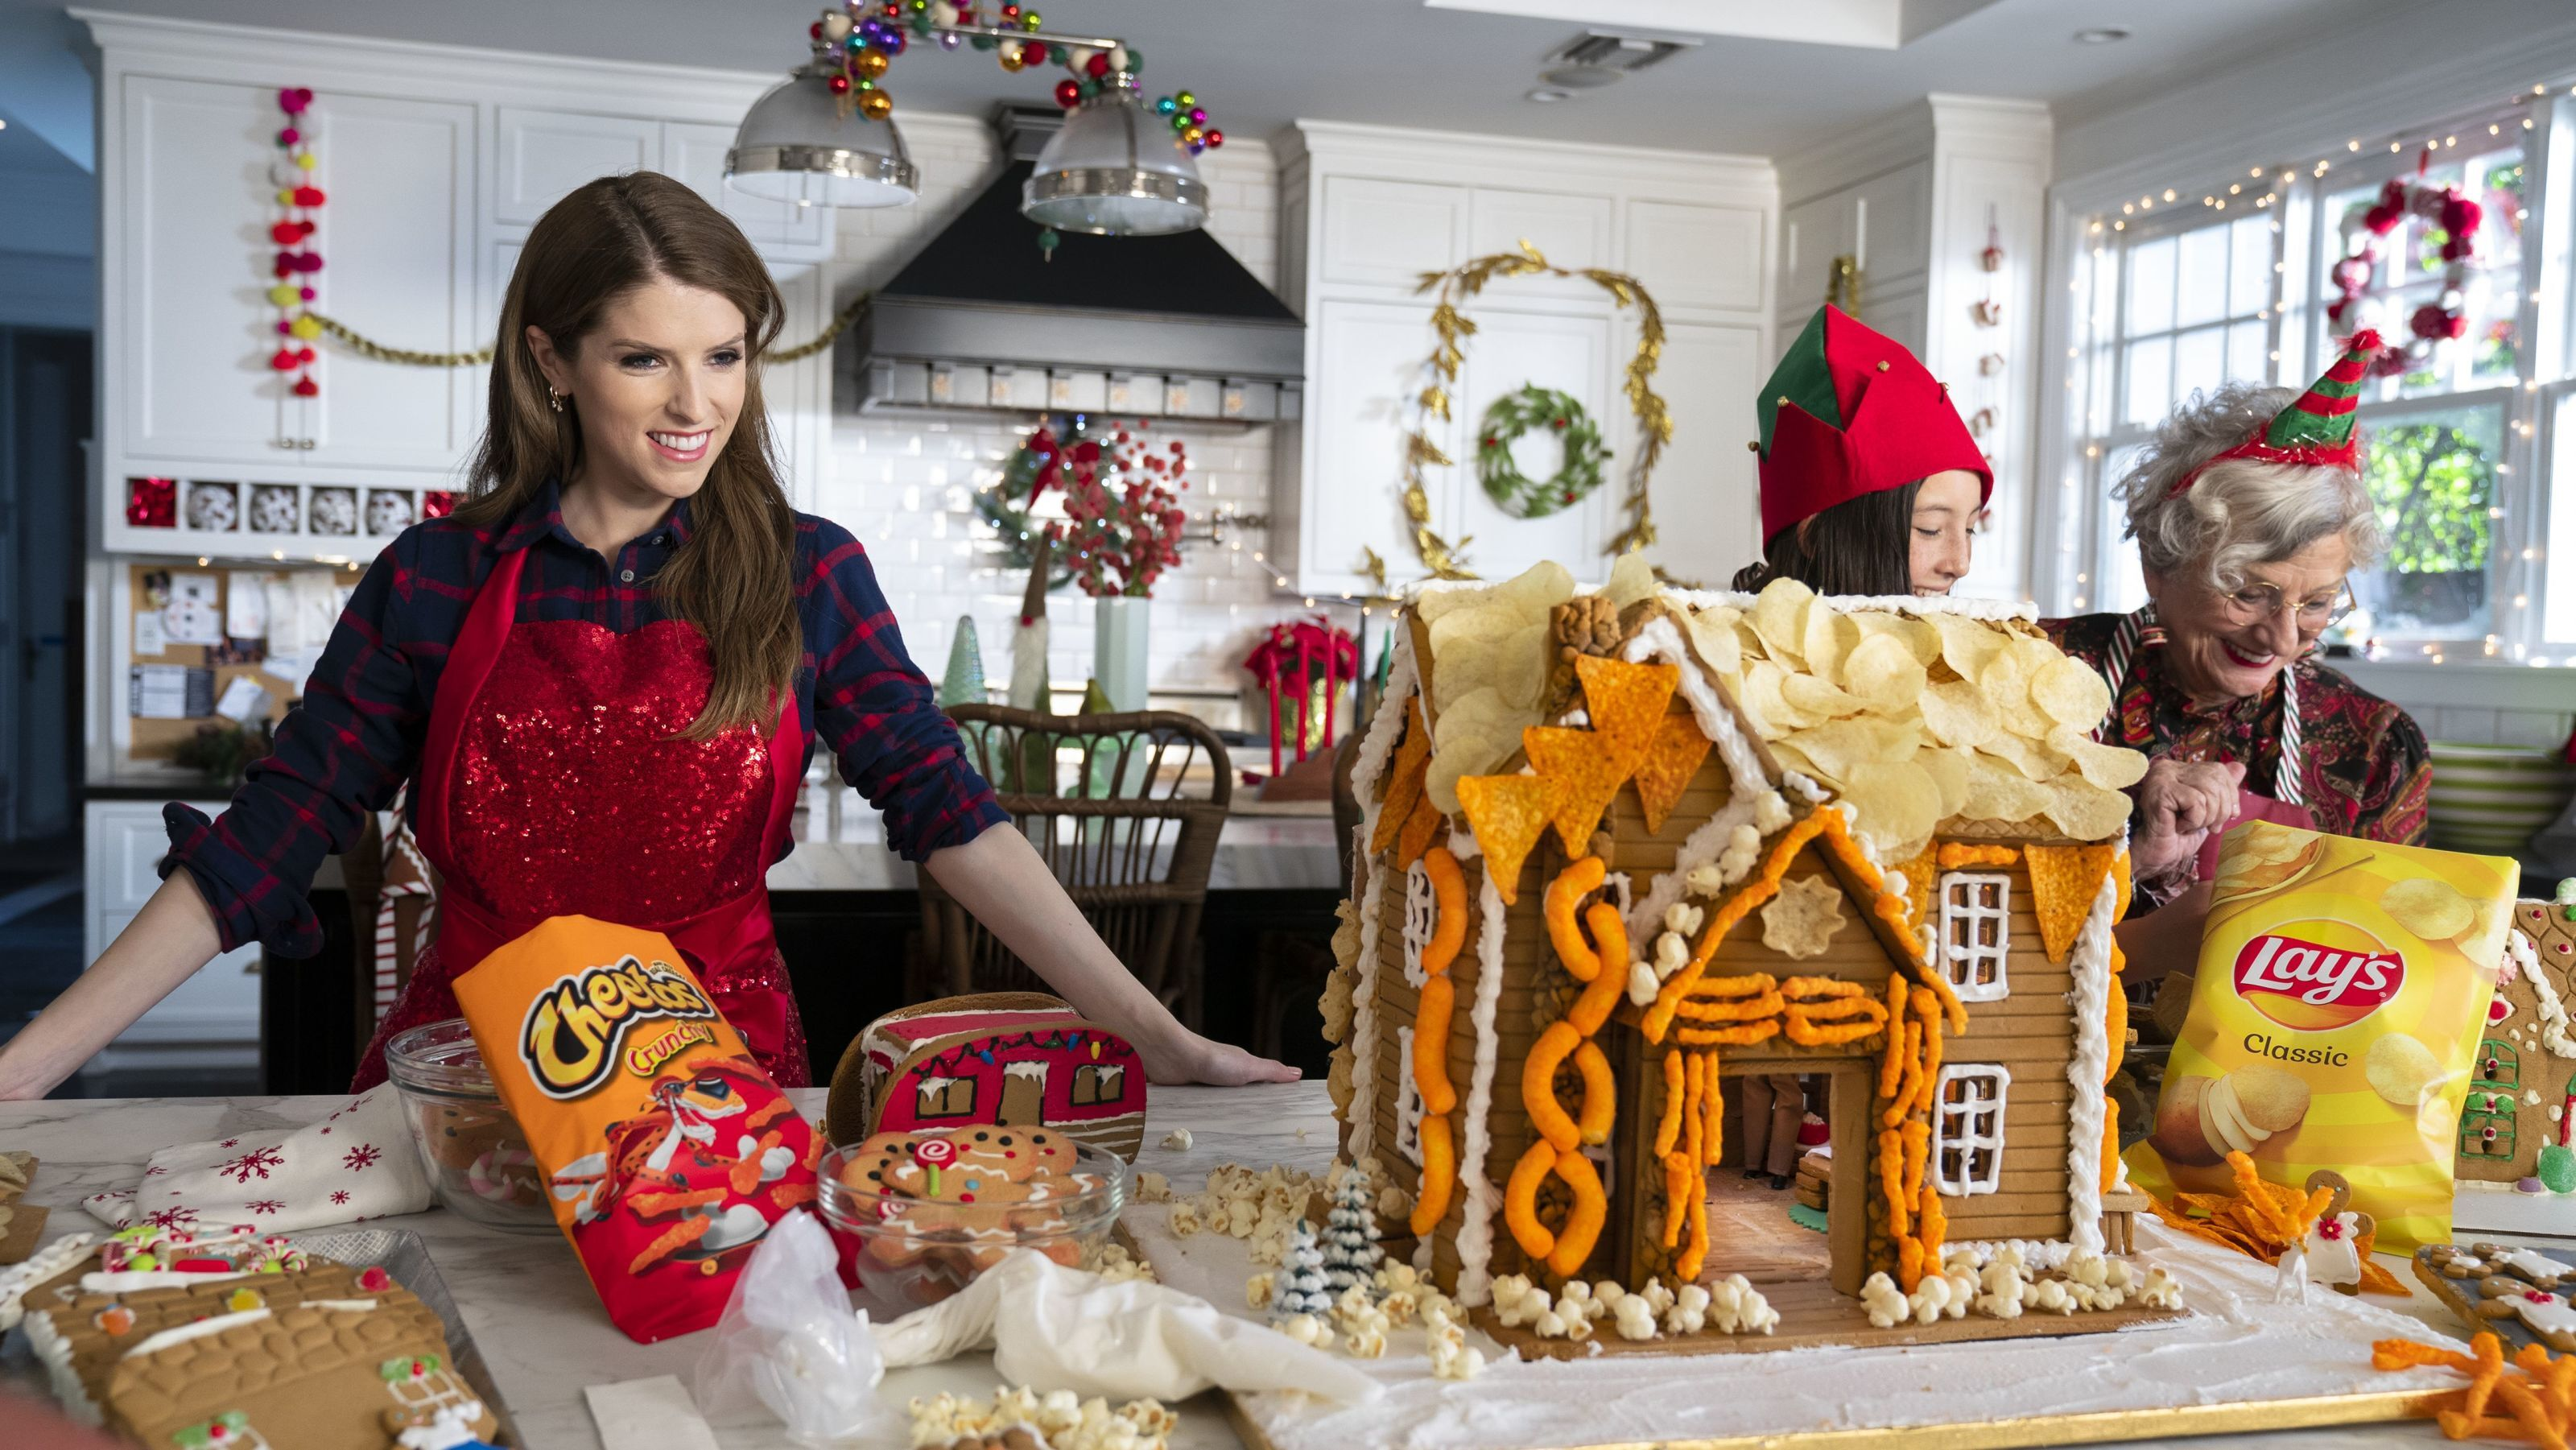 Anna Kendrick has a few favorite snacks to sing about this holiday season